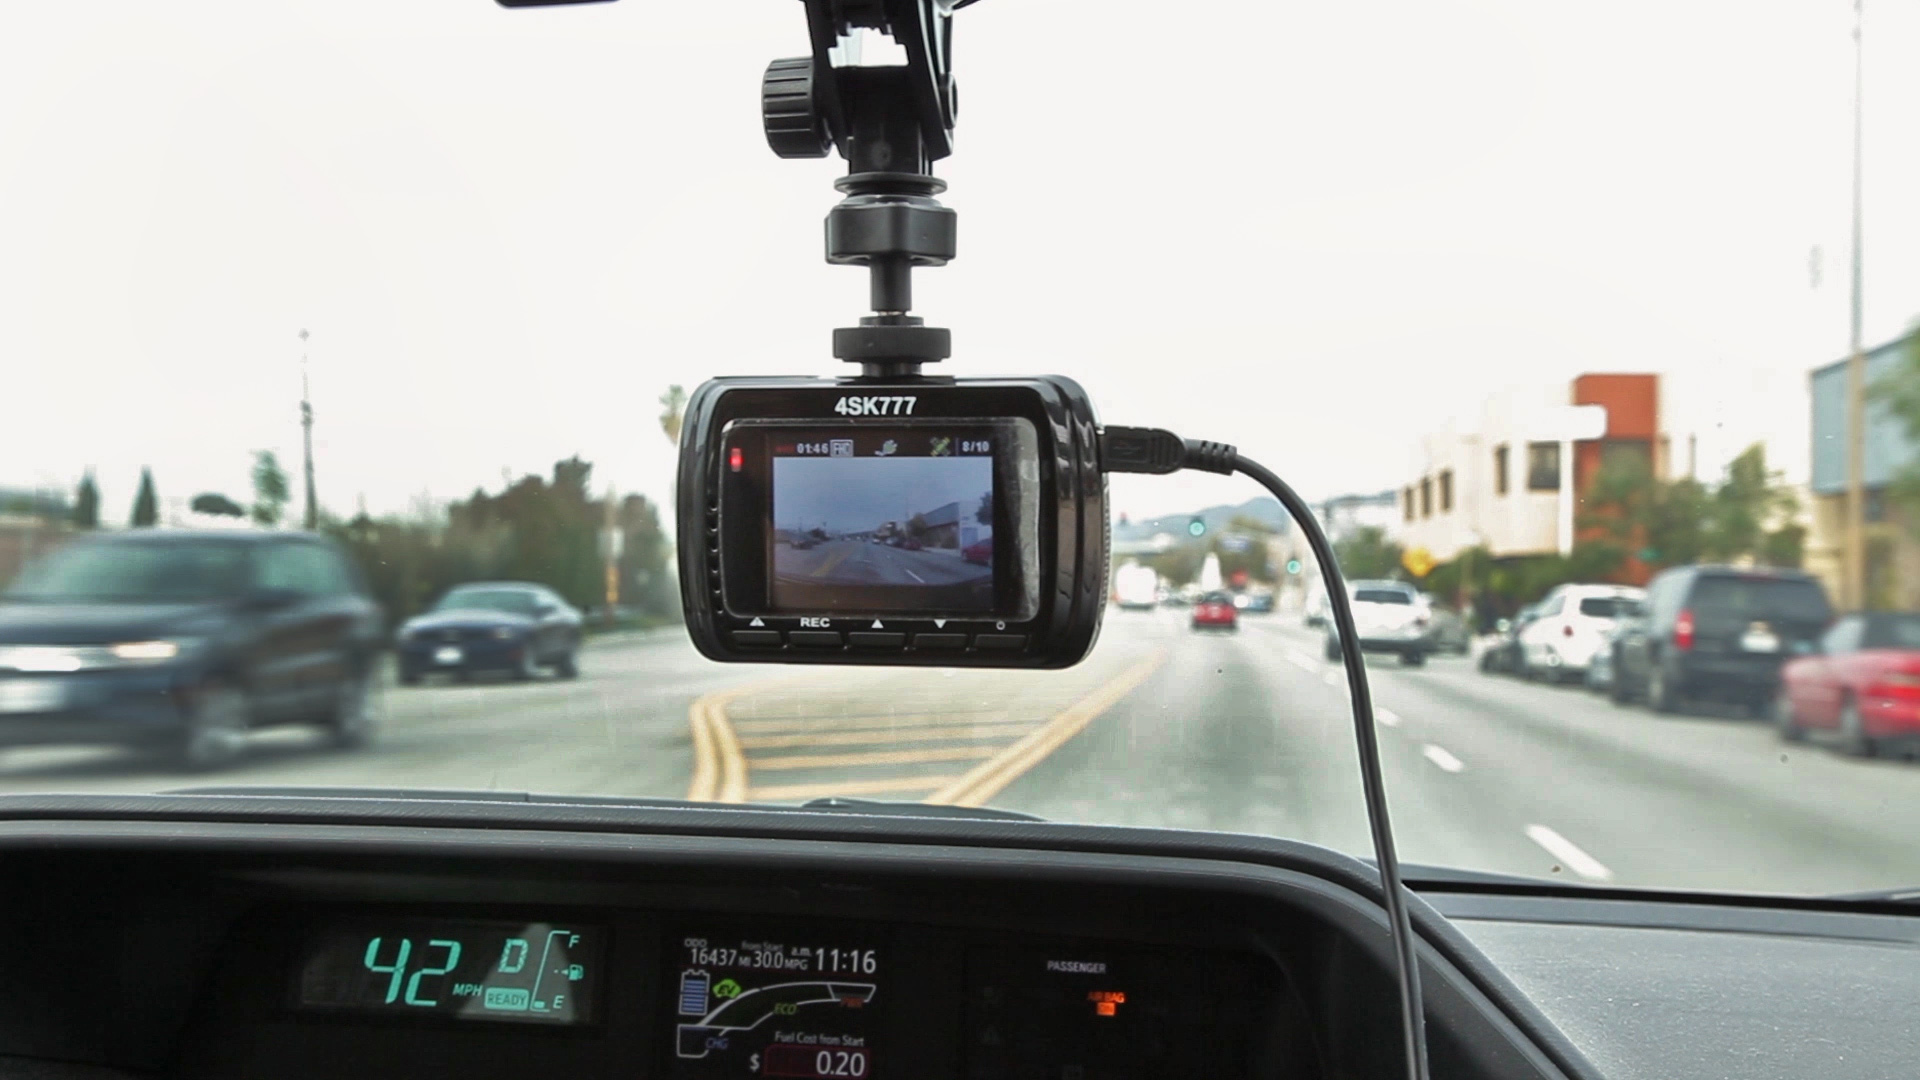 4sight 4sk777 dash board camera